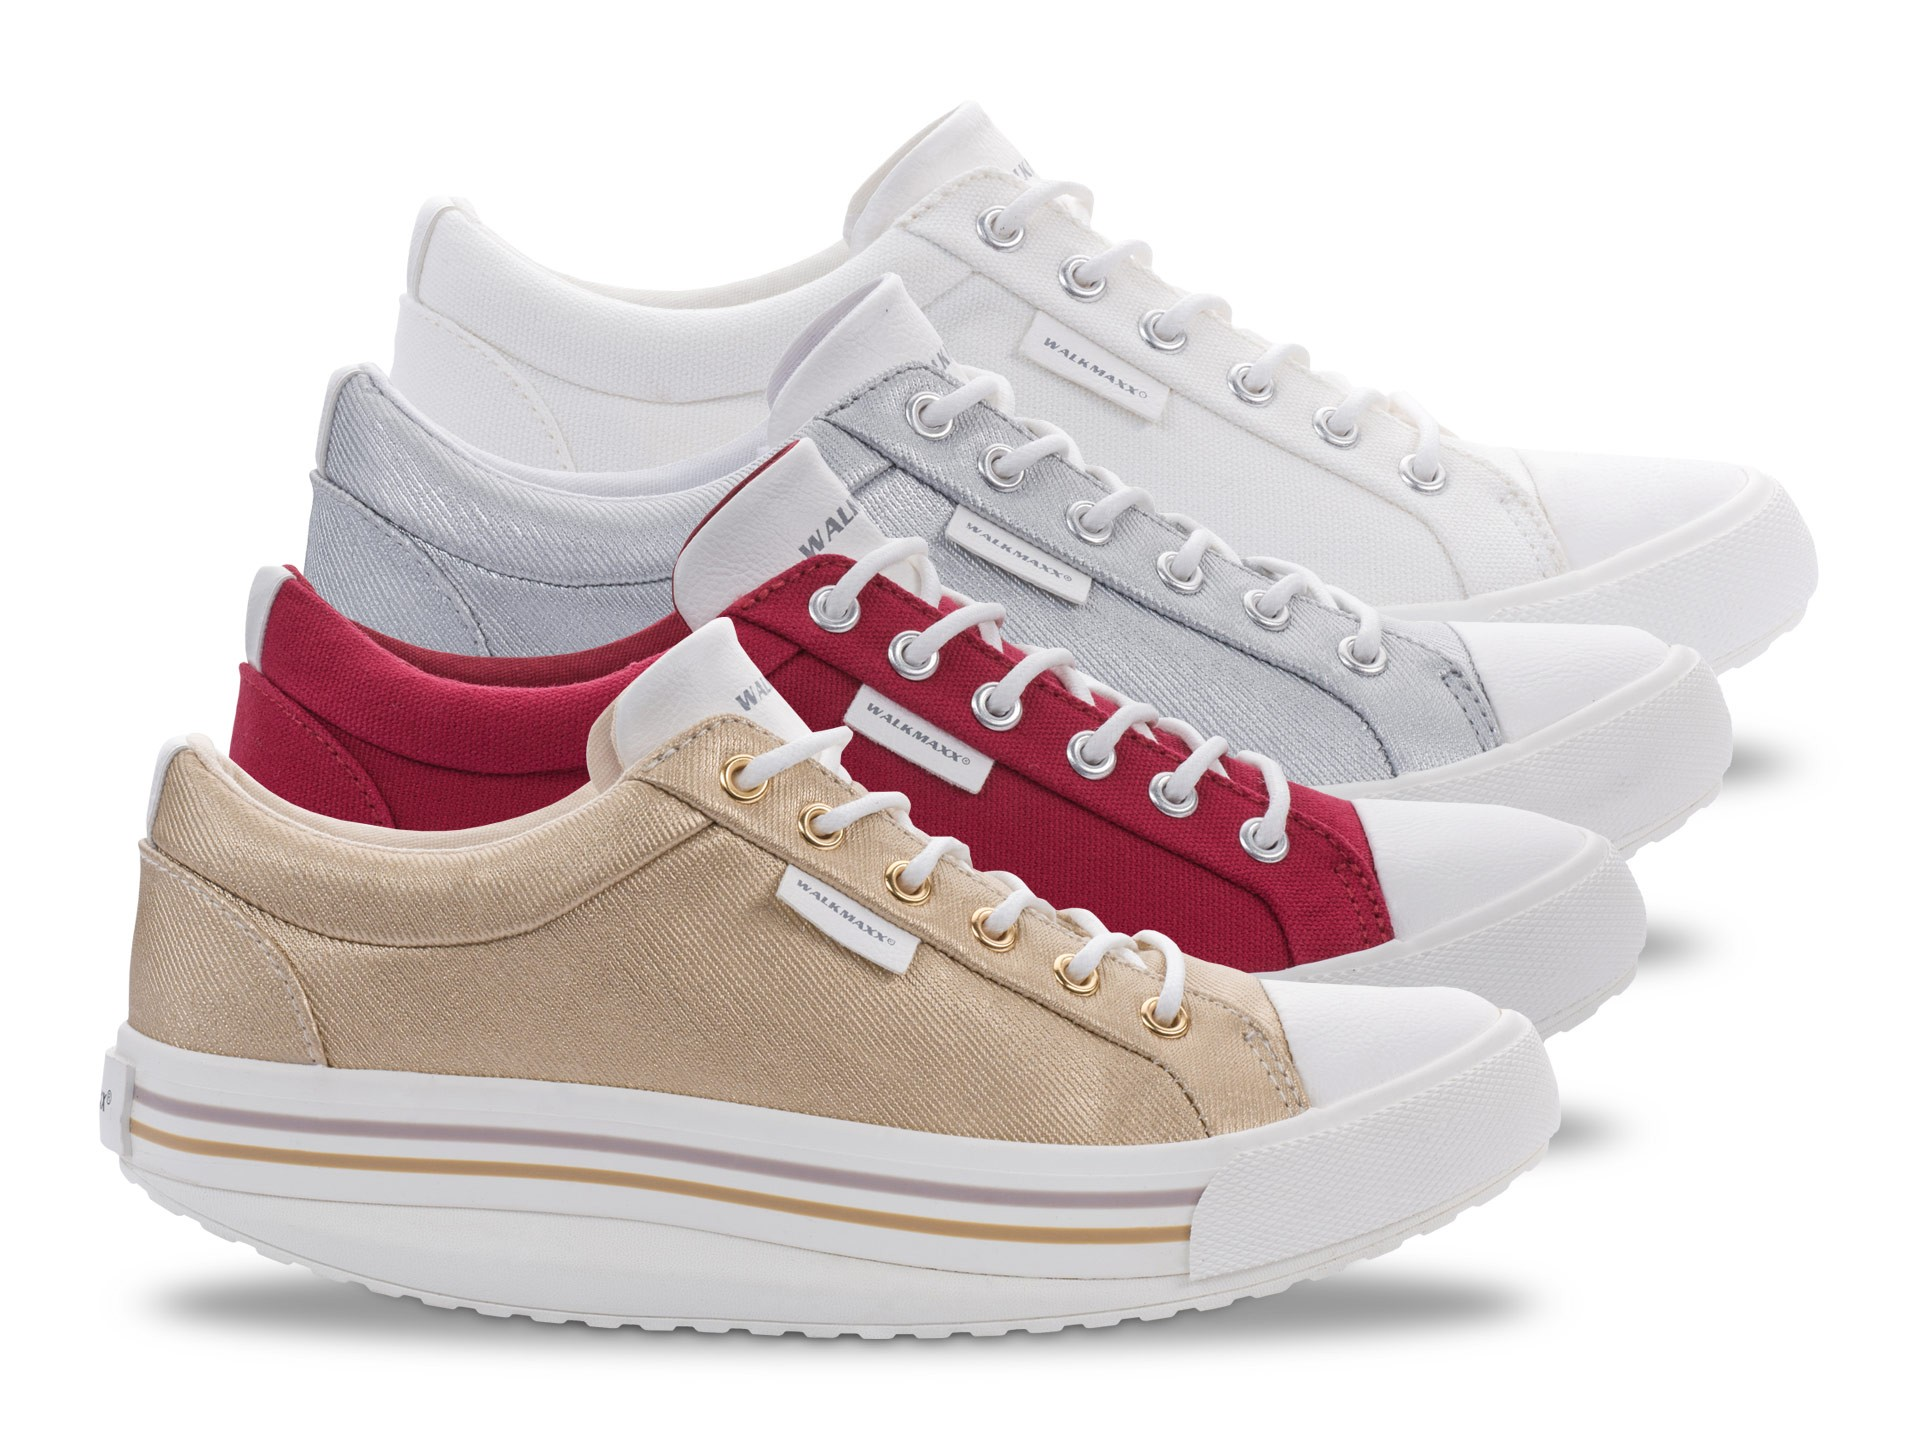 Comfort Leisure Shoes 3.0 0c591f3a915ff